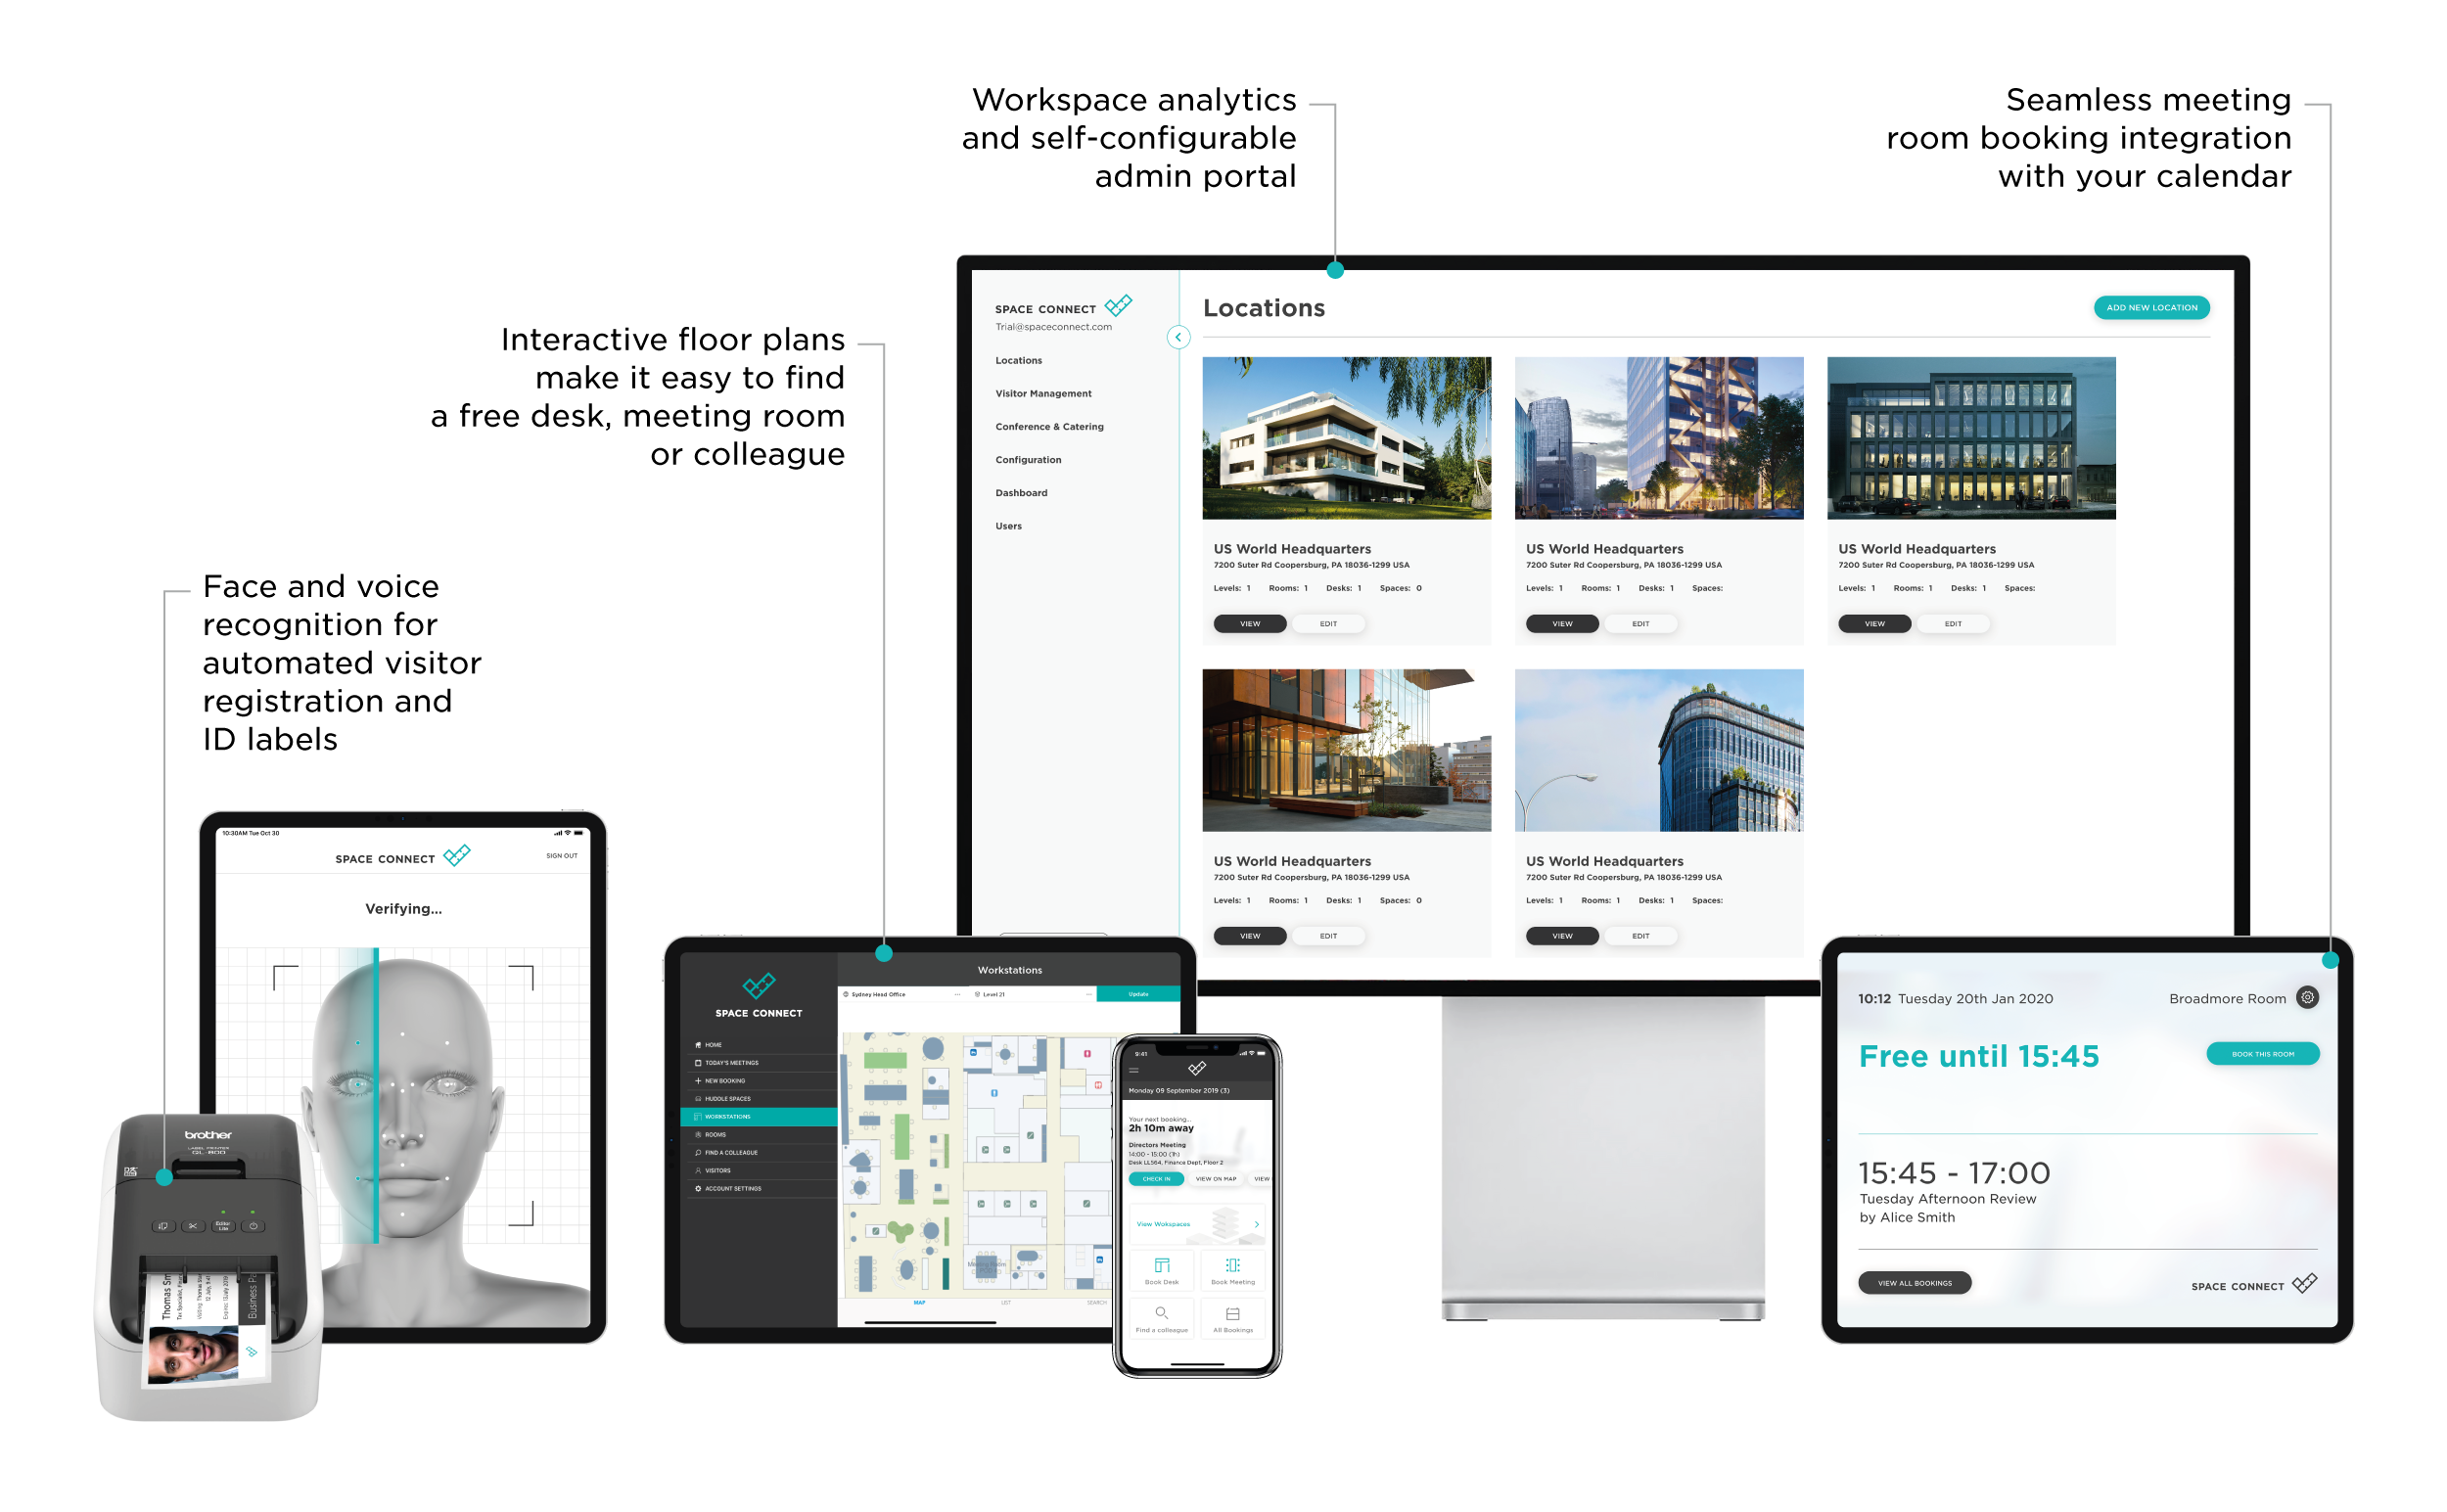 Fully configurable, end-to-end workspace management solution